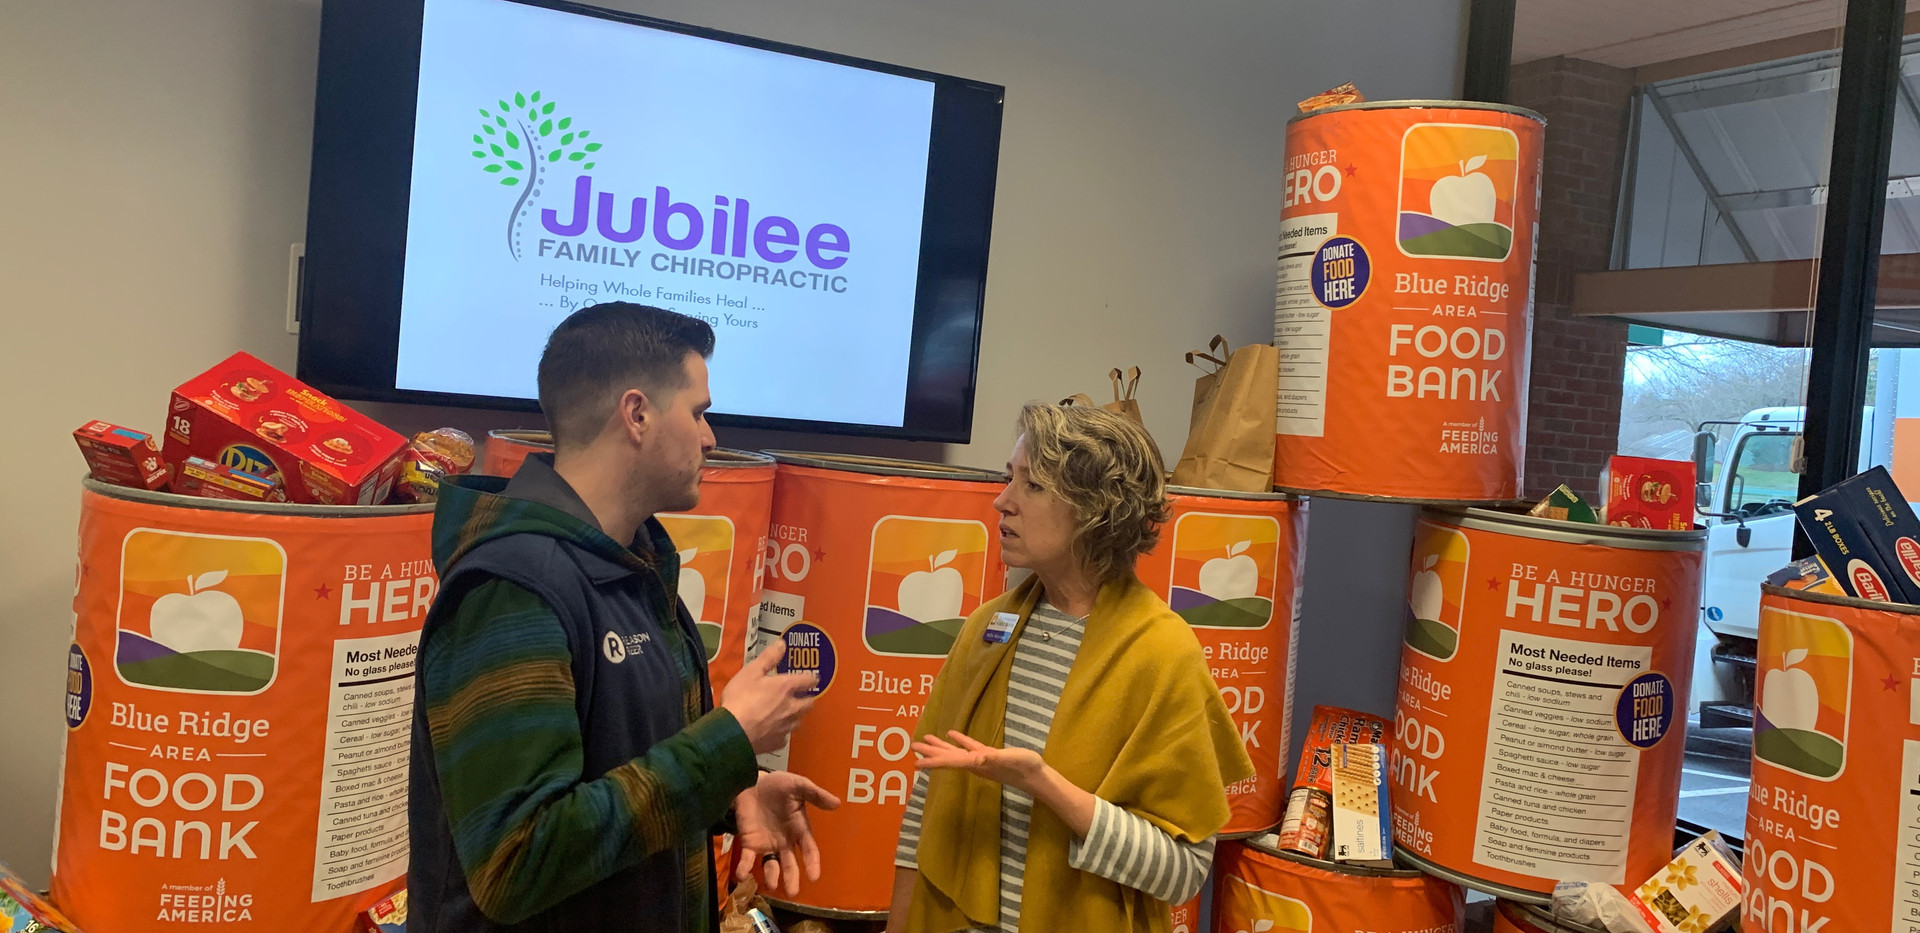 Jubilee Family Chiropractic 2020 Blue Ridge Food Drive. 044